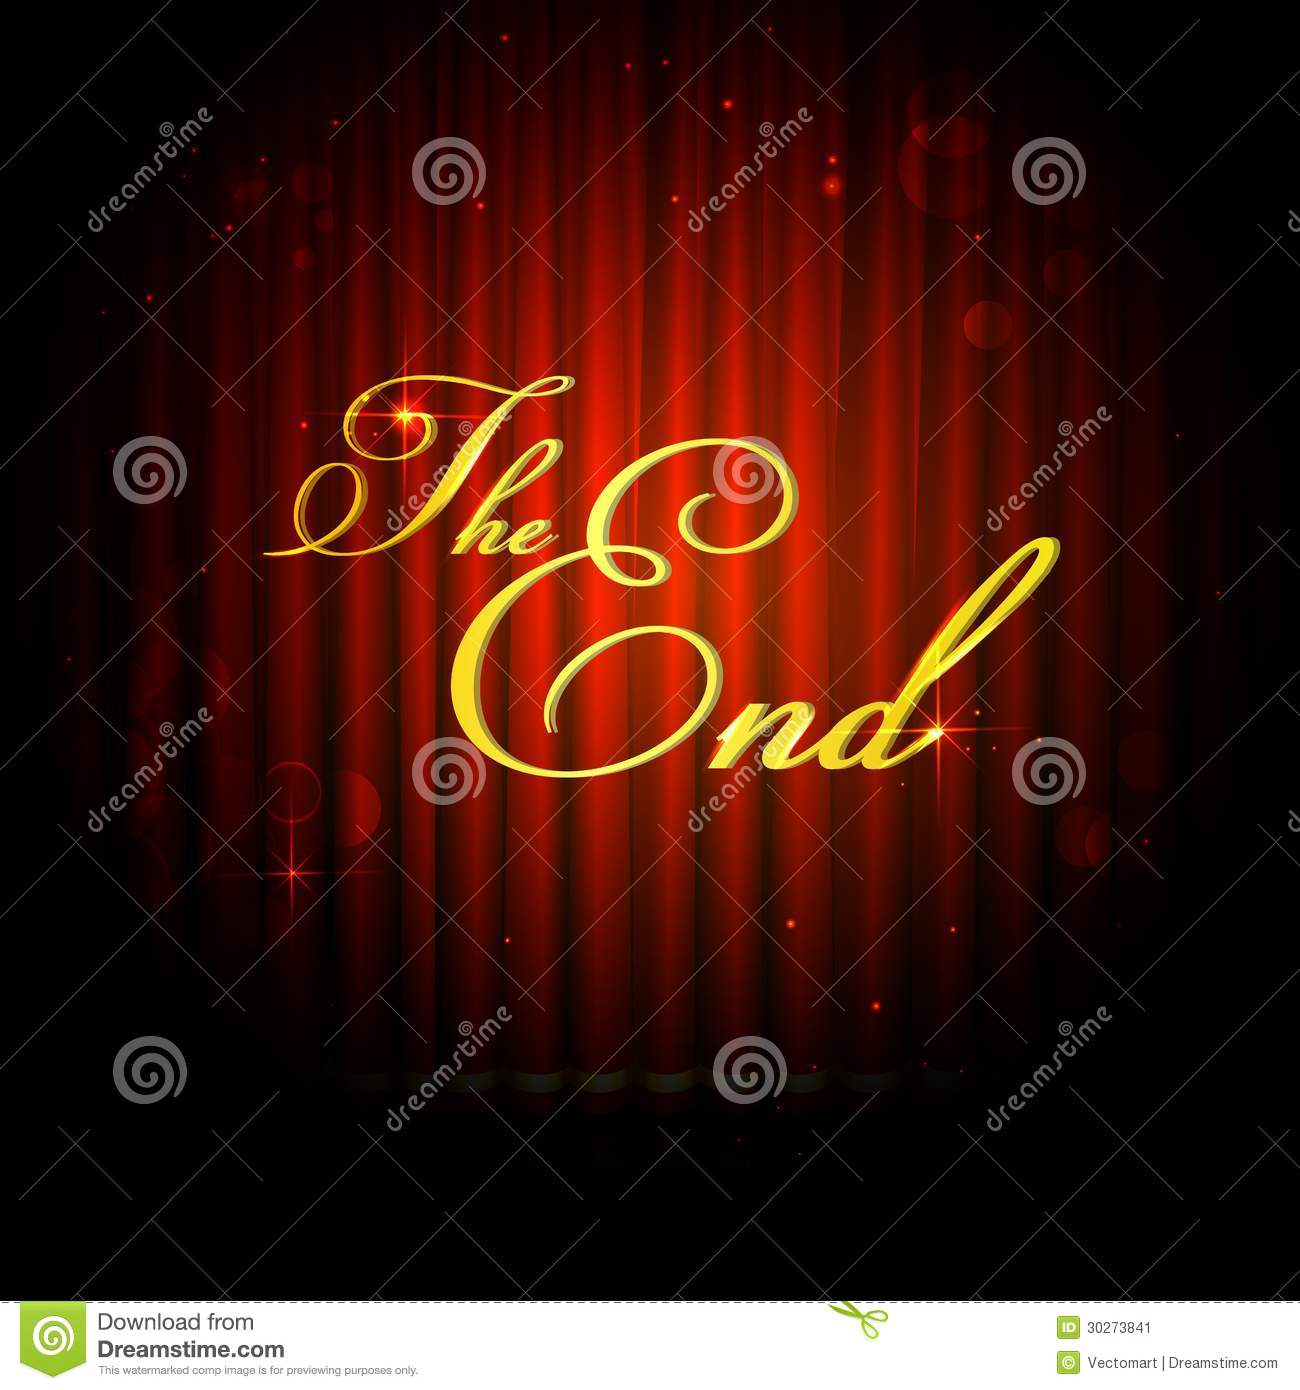 The End On Curtain Stock Image Image 30273841